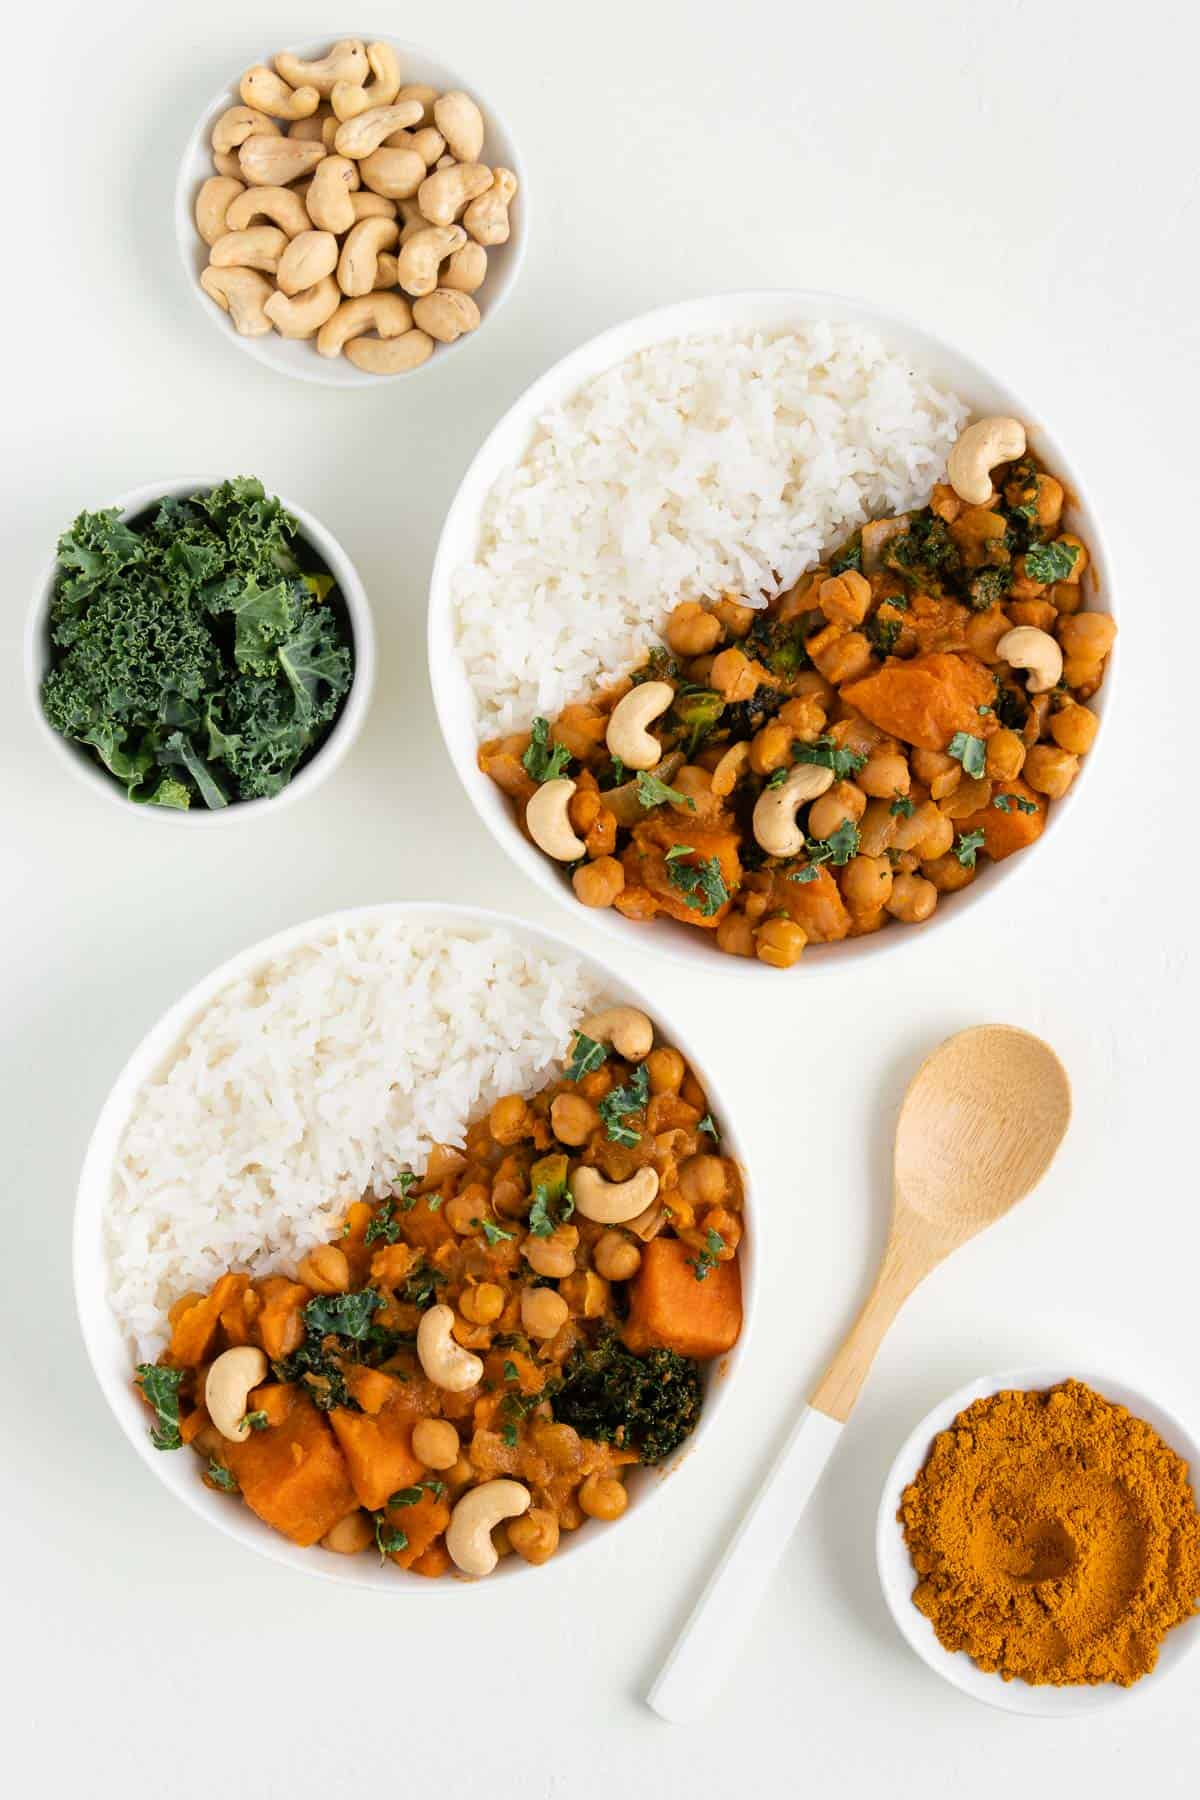 two bowls of sweet potato, kale, and chickpea curry beside a wooden spoon, bowl of kale, and bowl of cashews